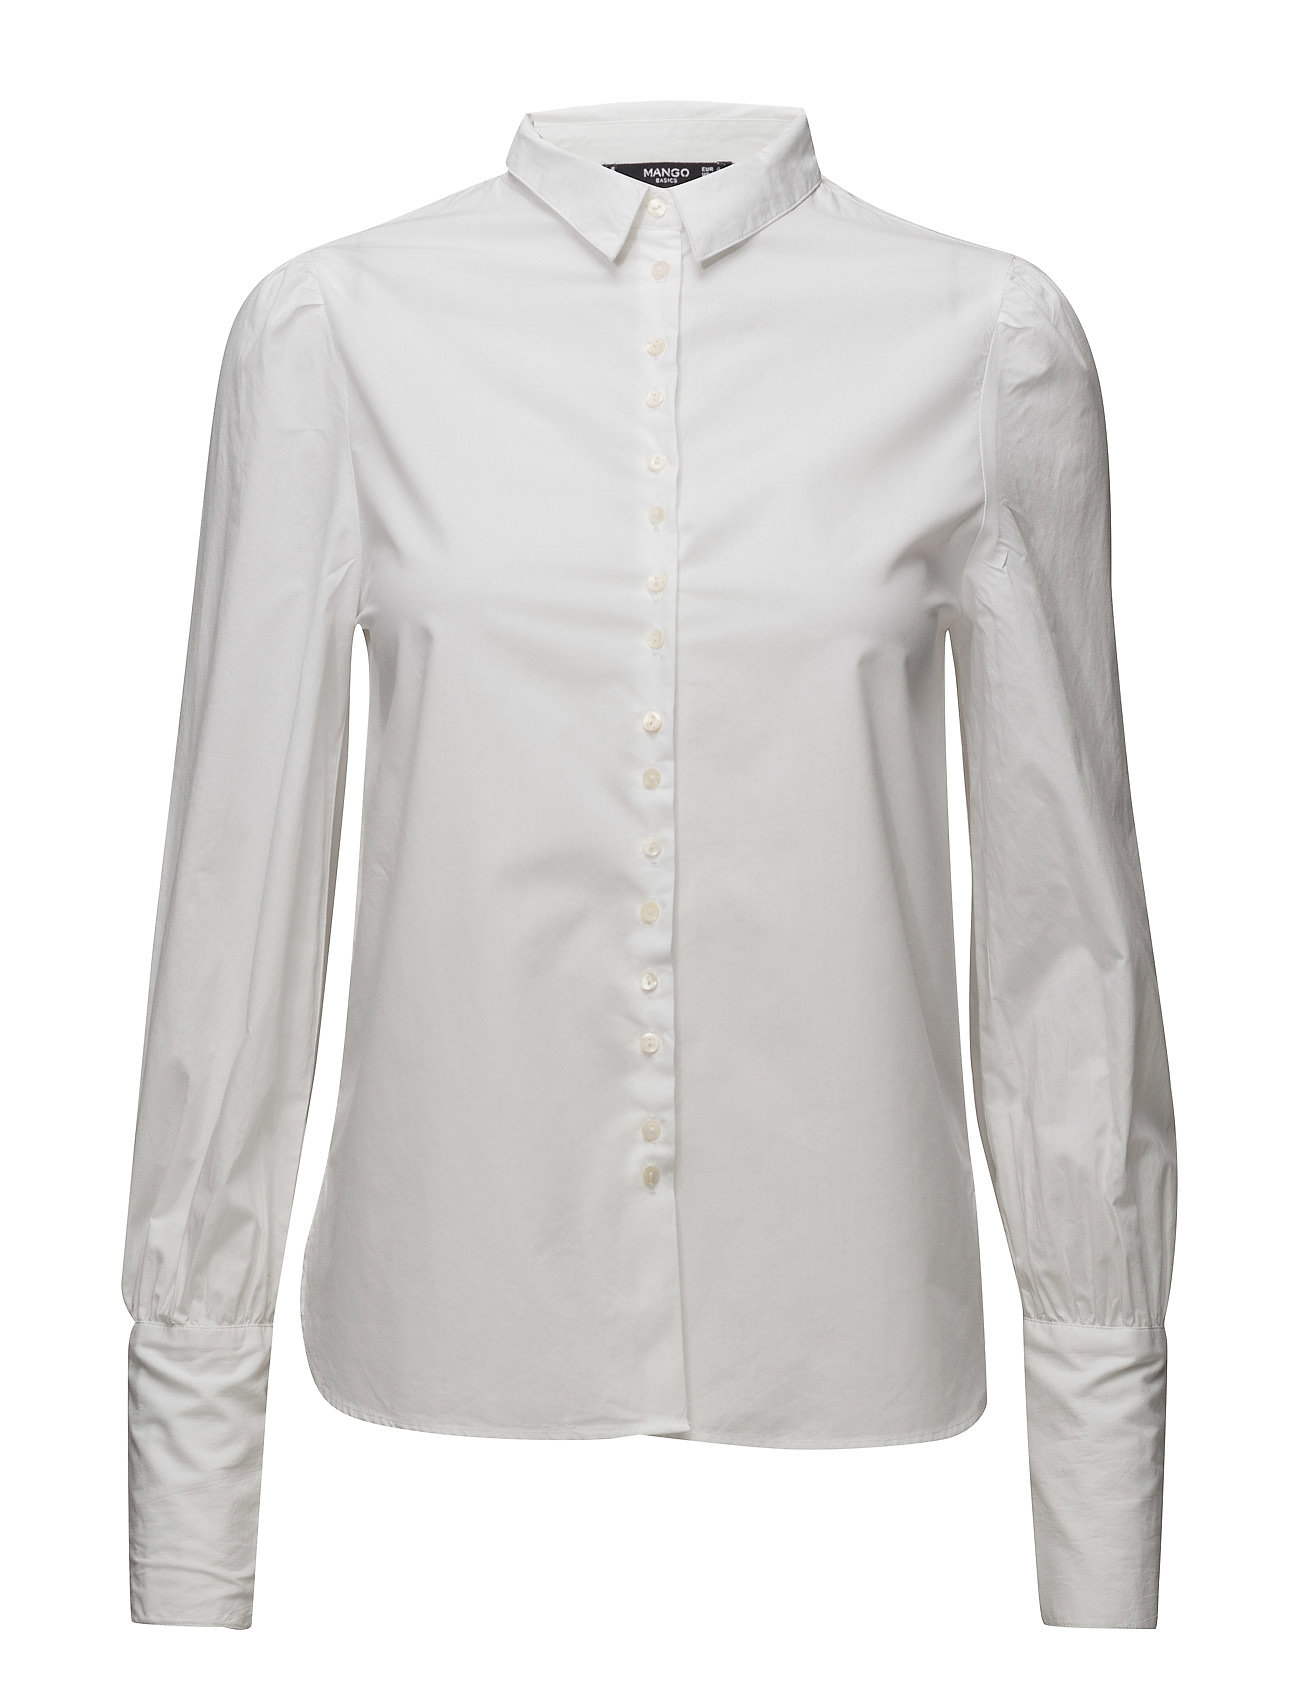 Image of Puffed Sleeves Shirt (2669790335)